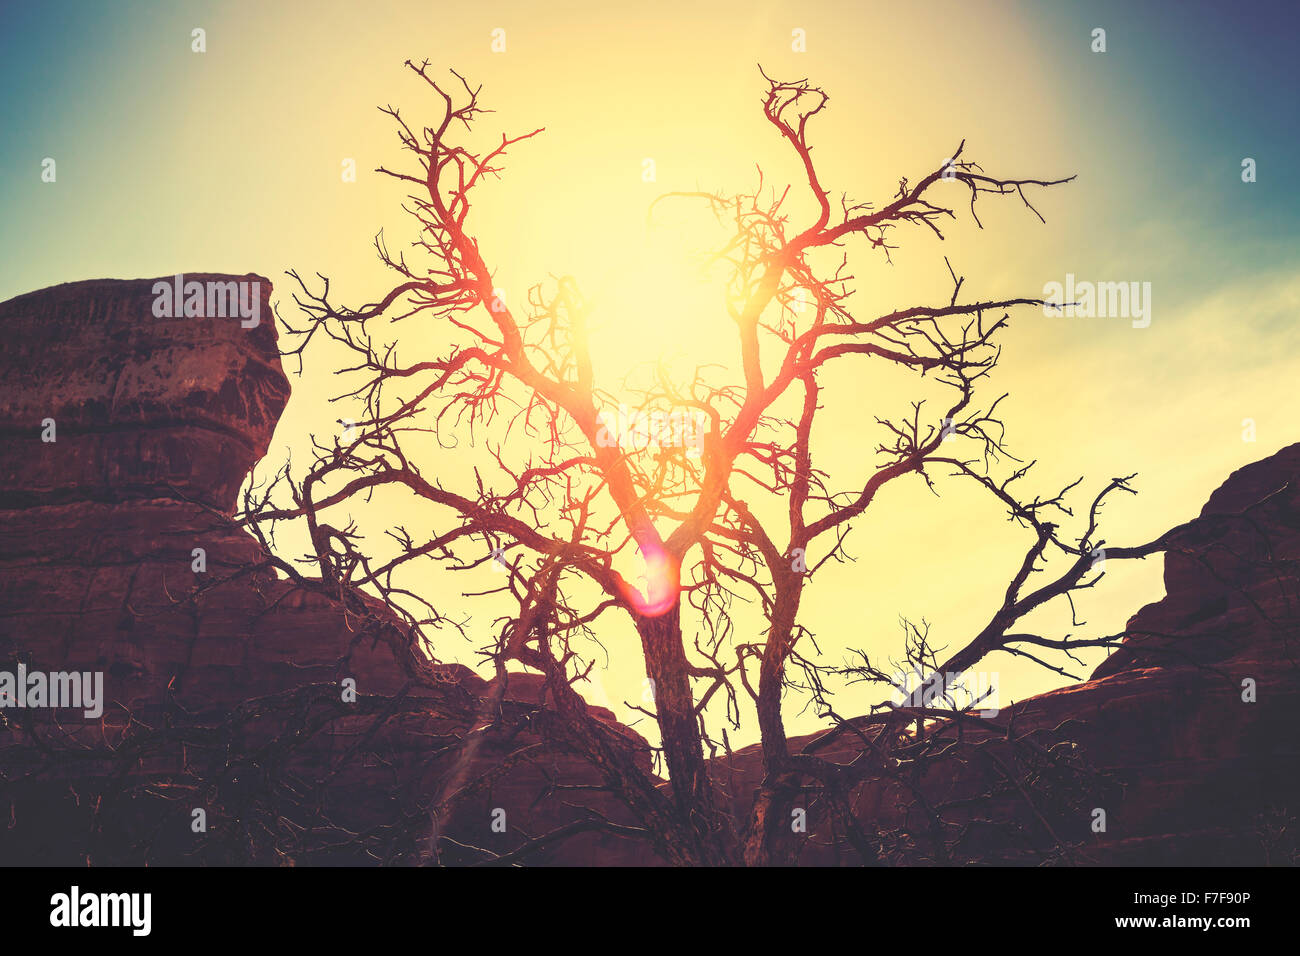 Vintage toned silhouette of a lonely dry tree at sunset, passing of time concept picture. - Stock Image